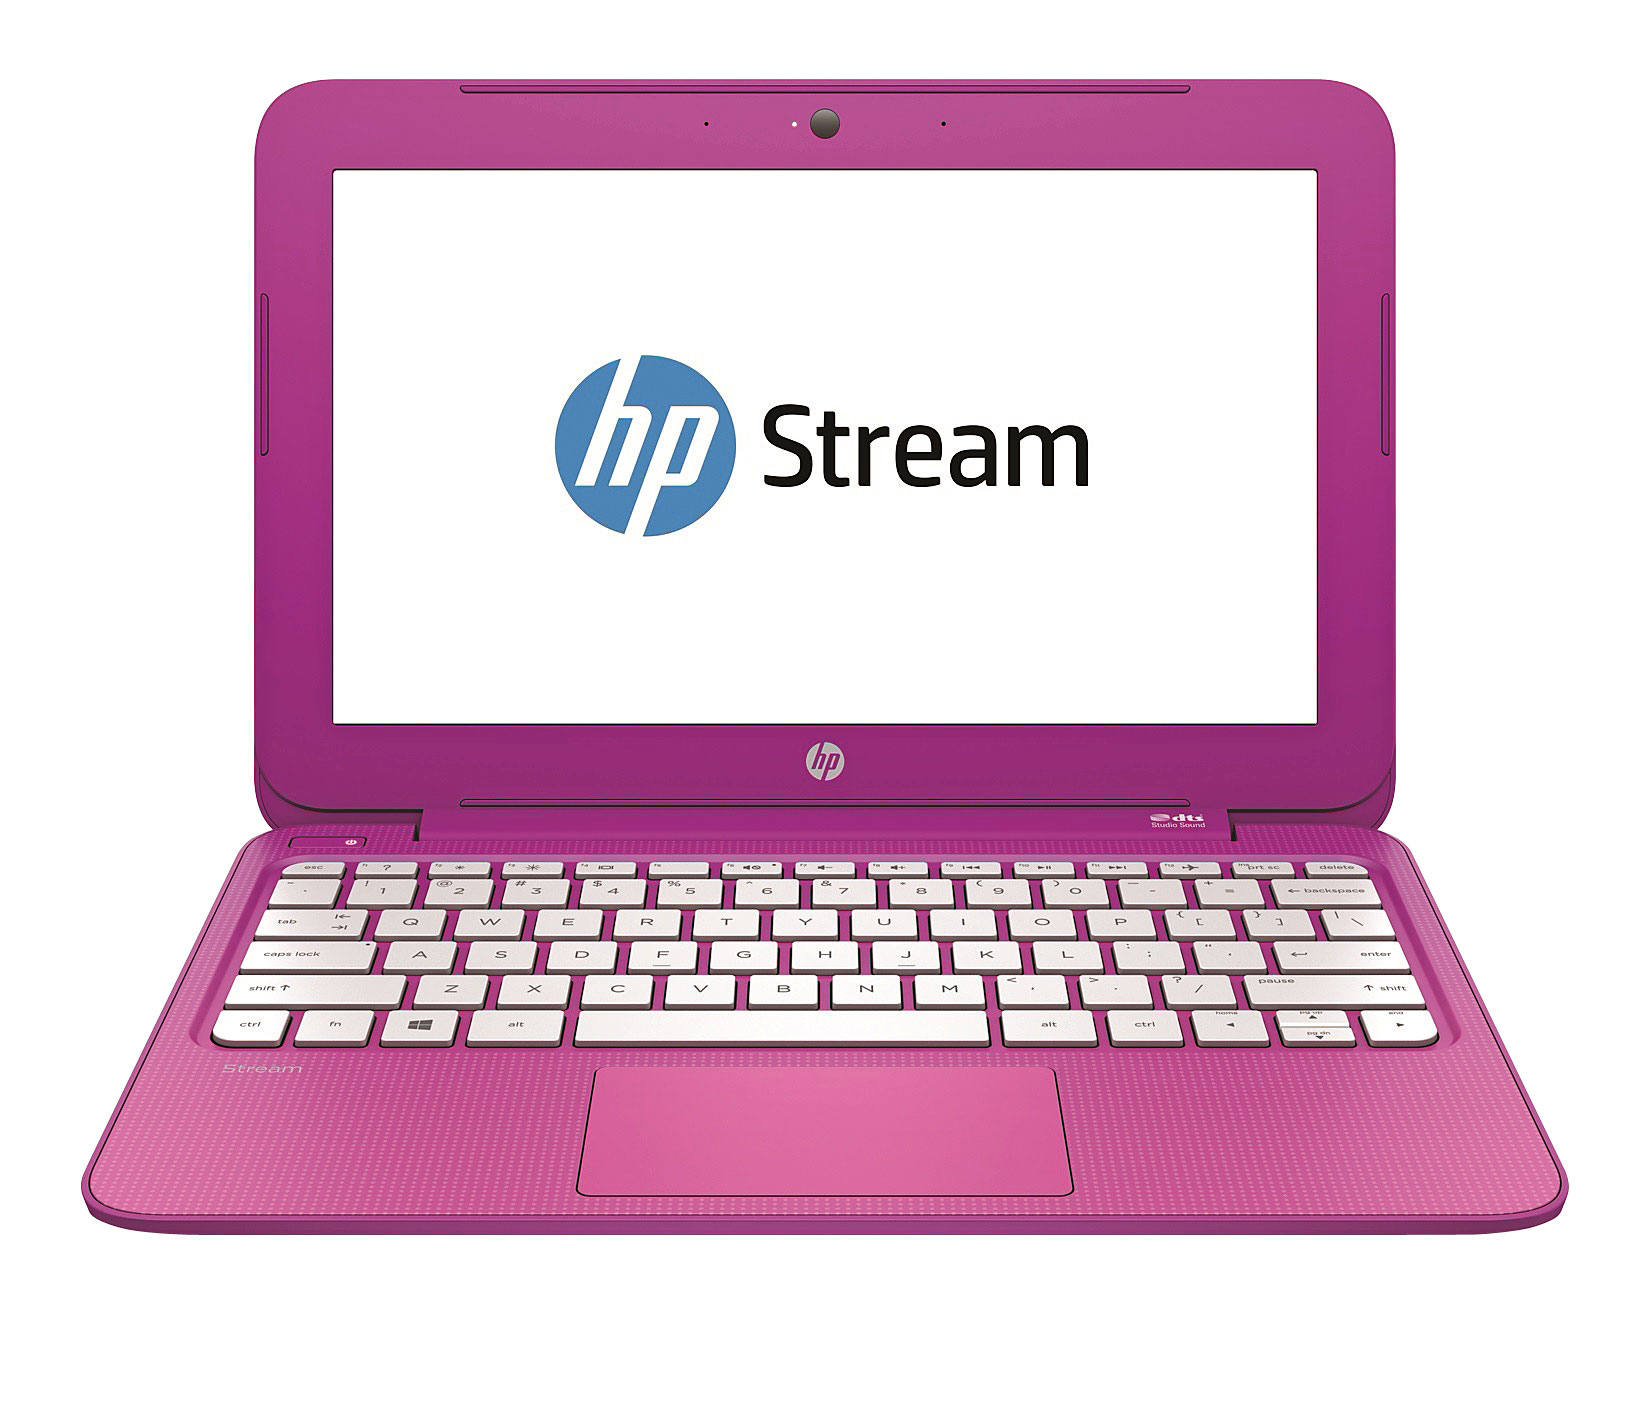 HP Stream 11d011na Intel Celeron 2GB RAM 32GB SSD 116 Laptop